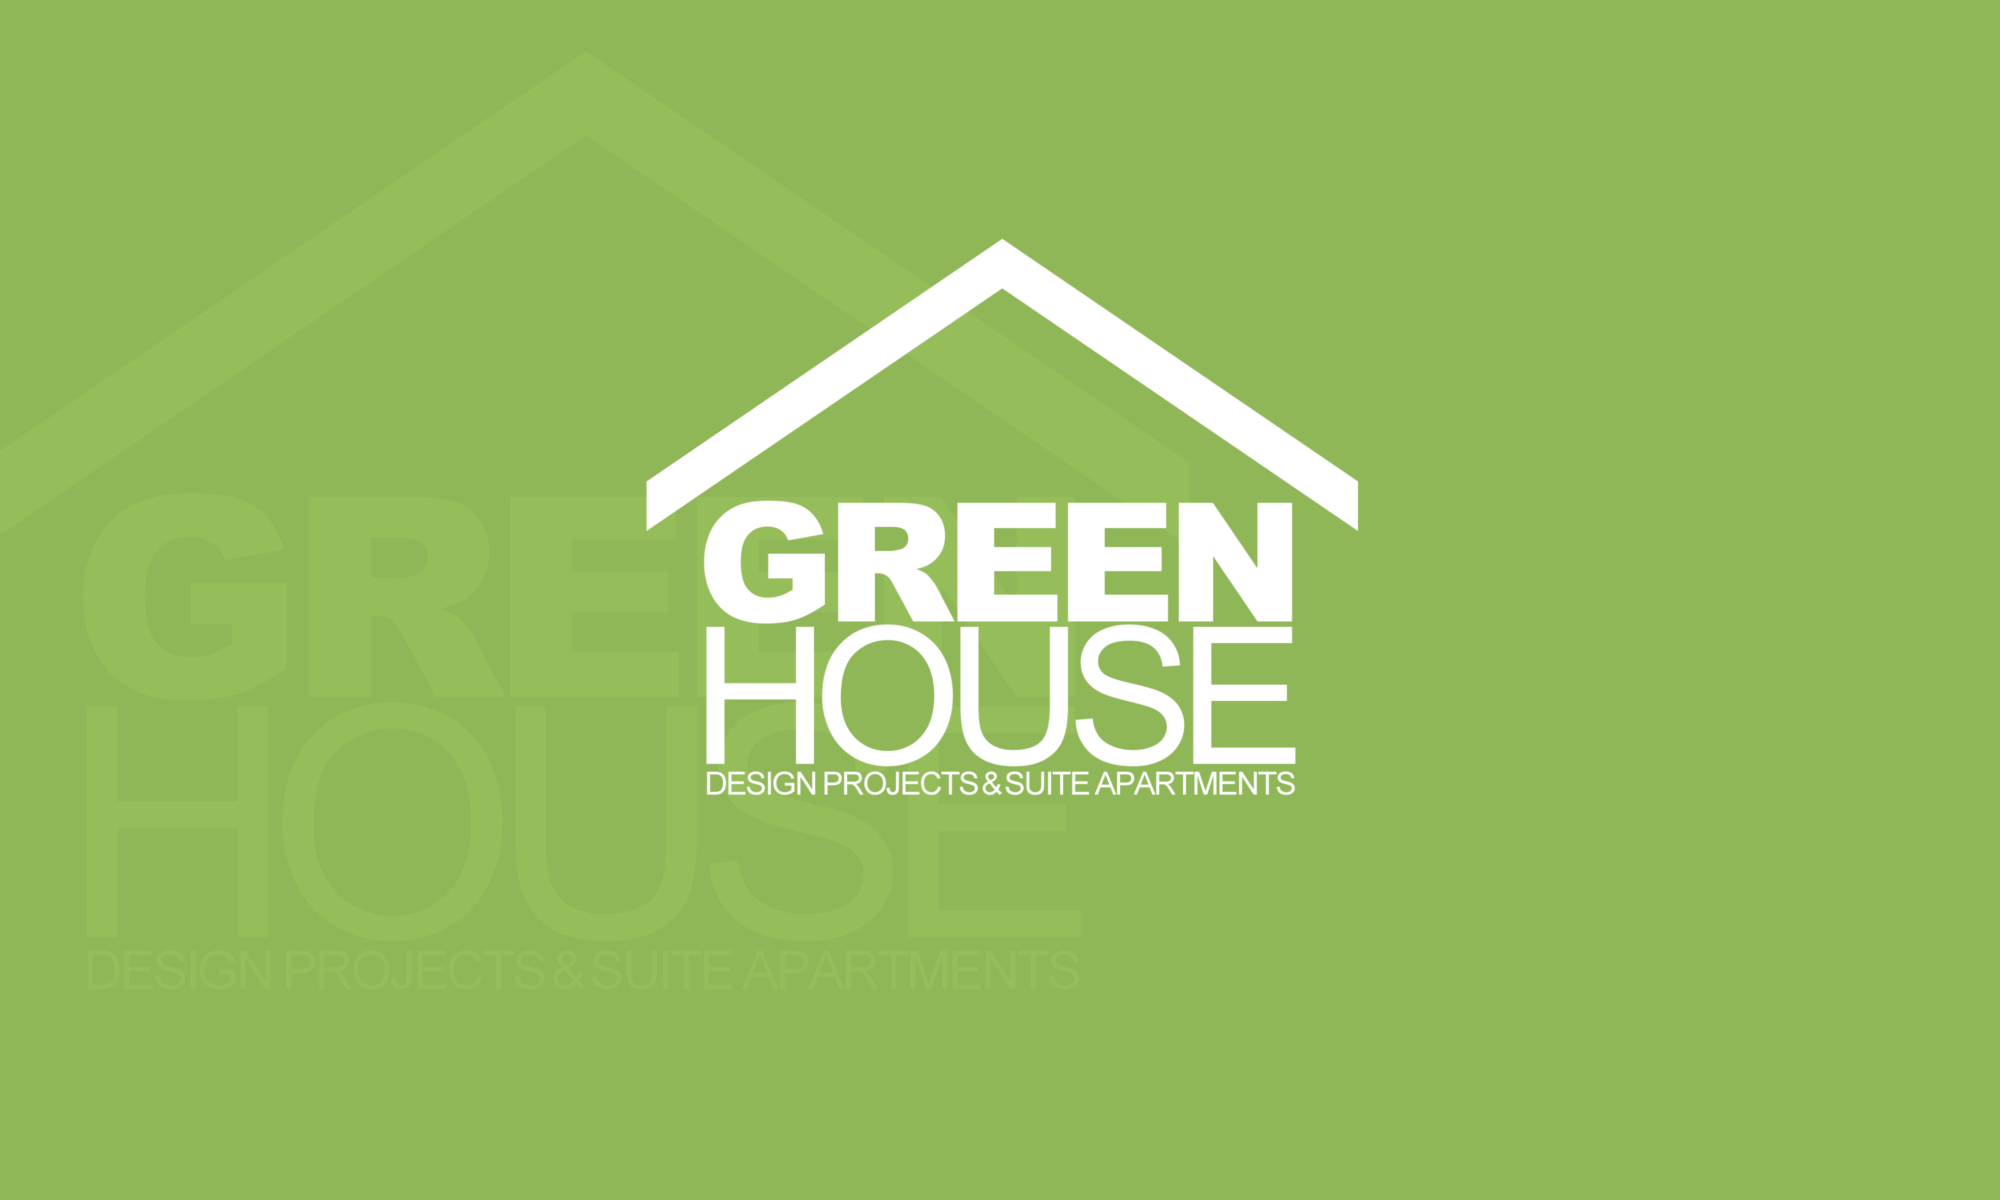 GREEN-HOUSE